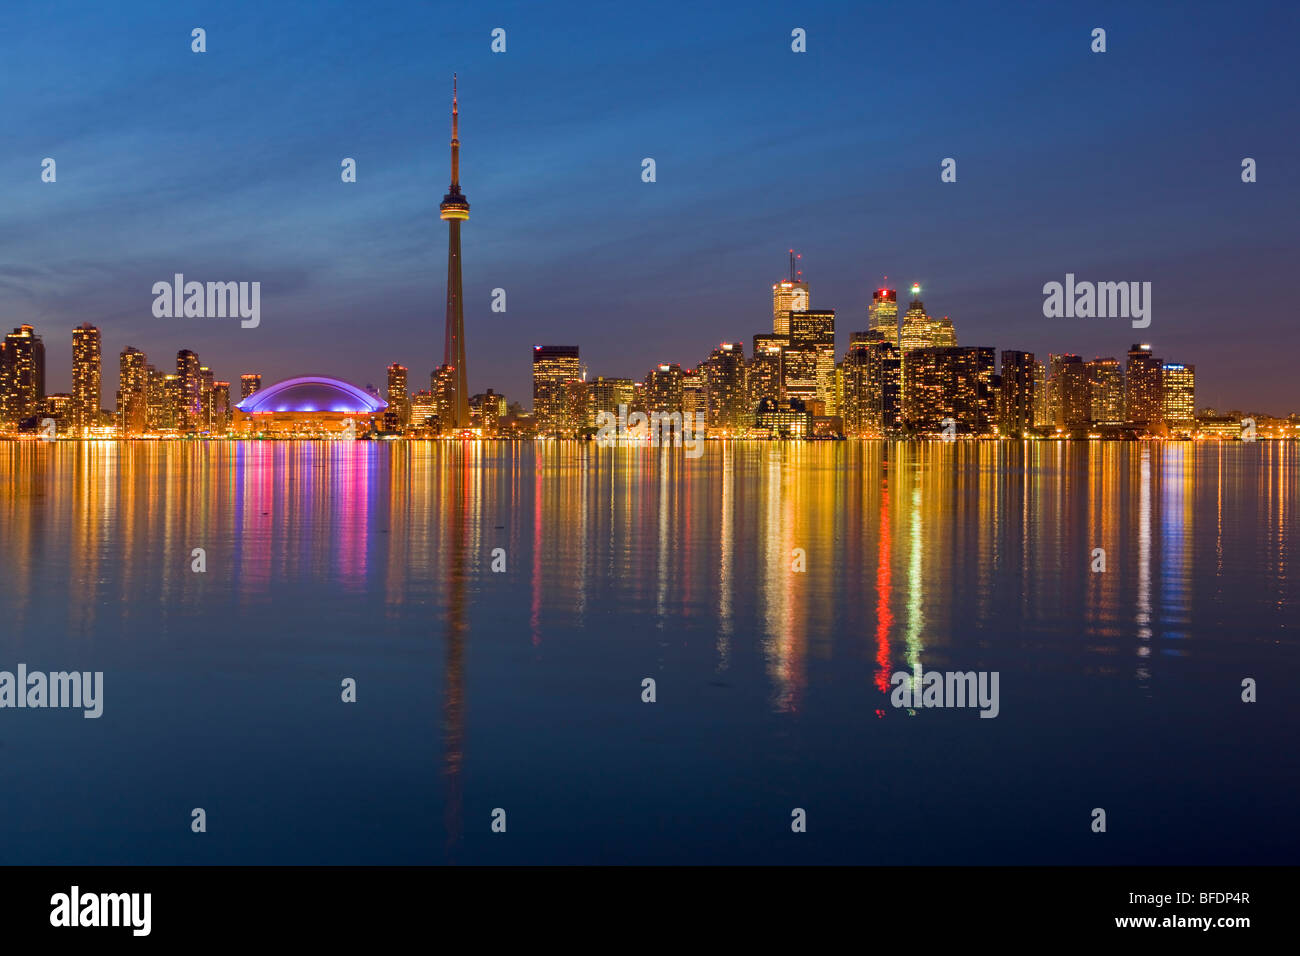 Toronto city skyline seen at dusk from Centre Island, Toronto Islands, Lake Ontario, Ontario, Canada Stock Photo